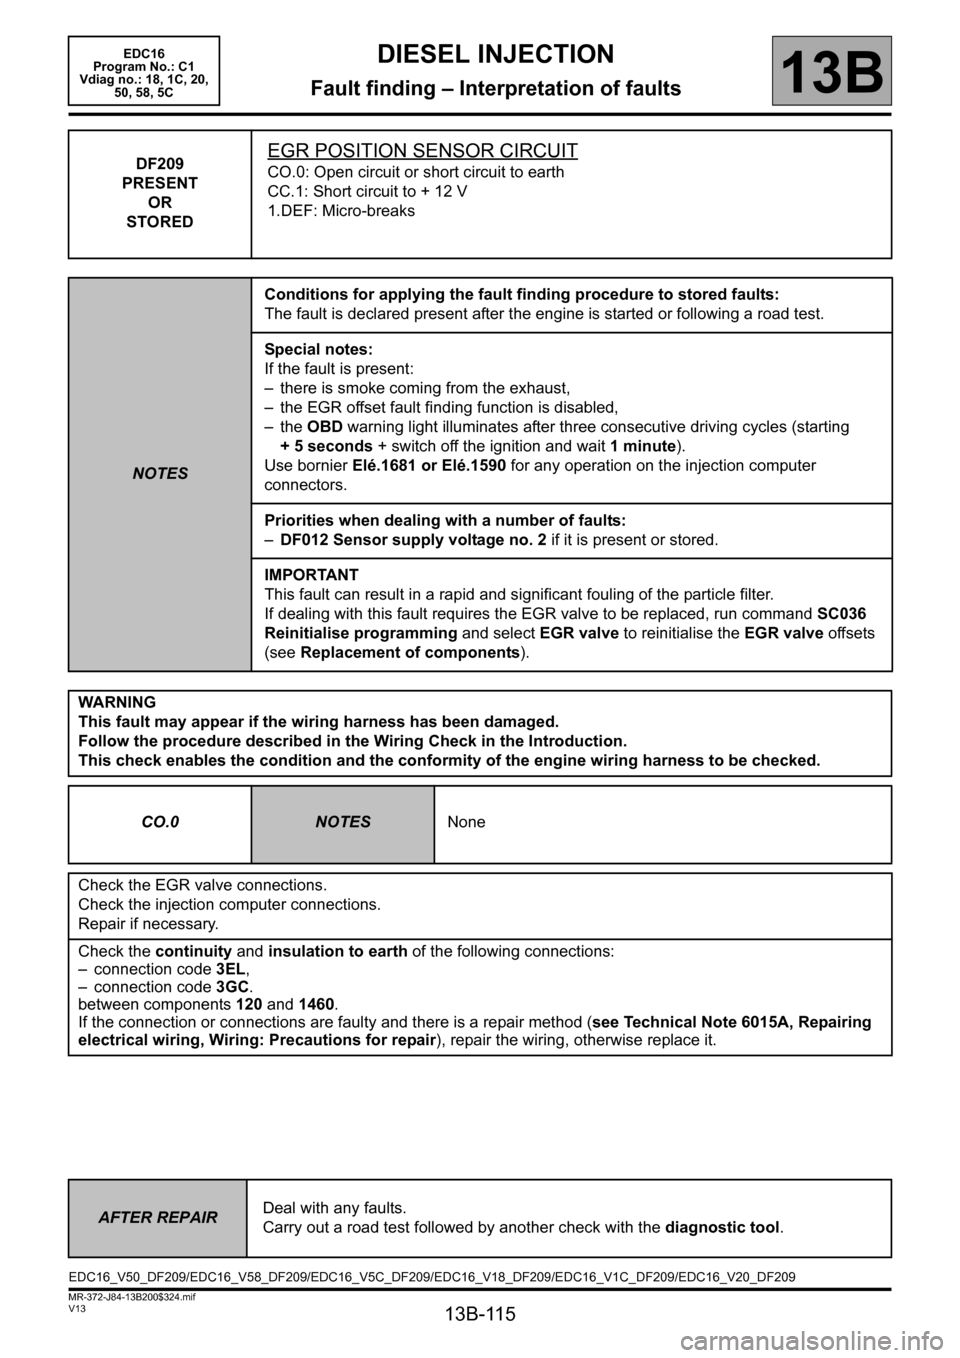 RENAULT SCENIC 2011 J95 / 3.G Engine And Peripherals EDC16 Workshop Manual, Page 115